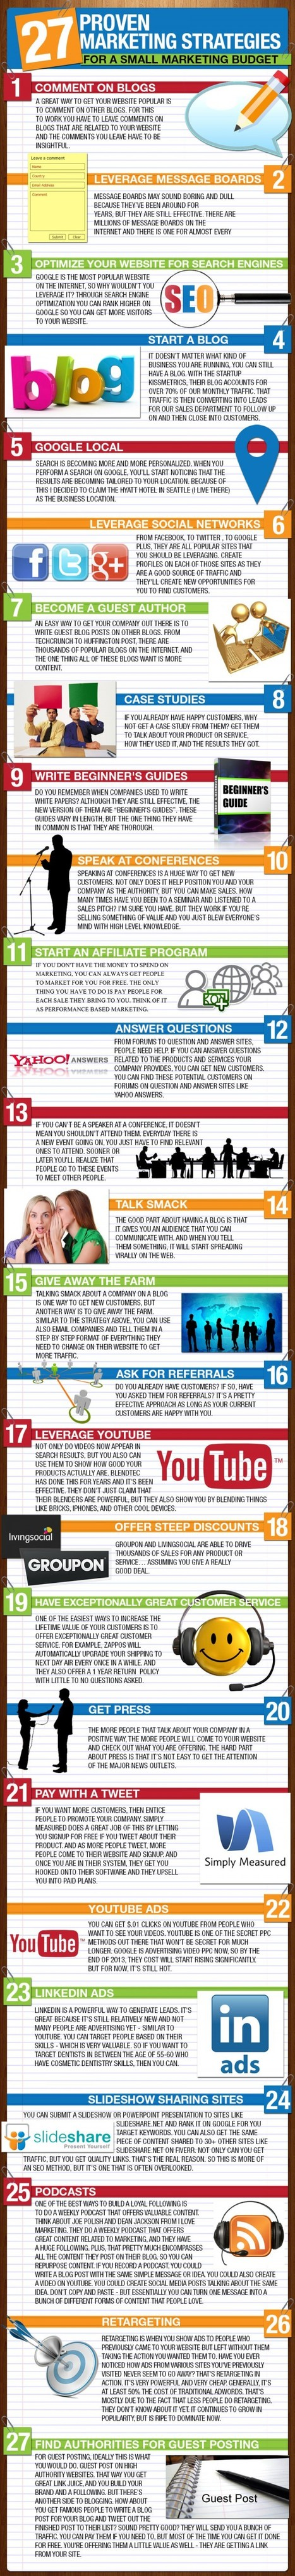 Marketing Strategies For A Small Budget  - 27 Proven Ideas [INFOGRAPHIC] | Marketing Revolution | Scoop.it